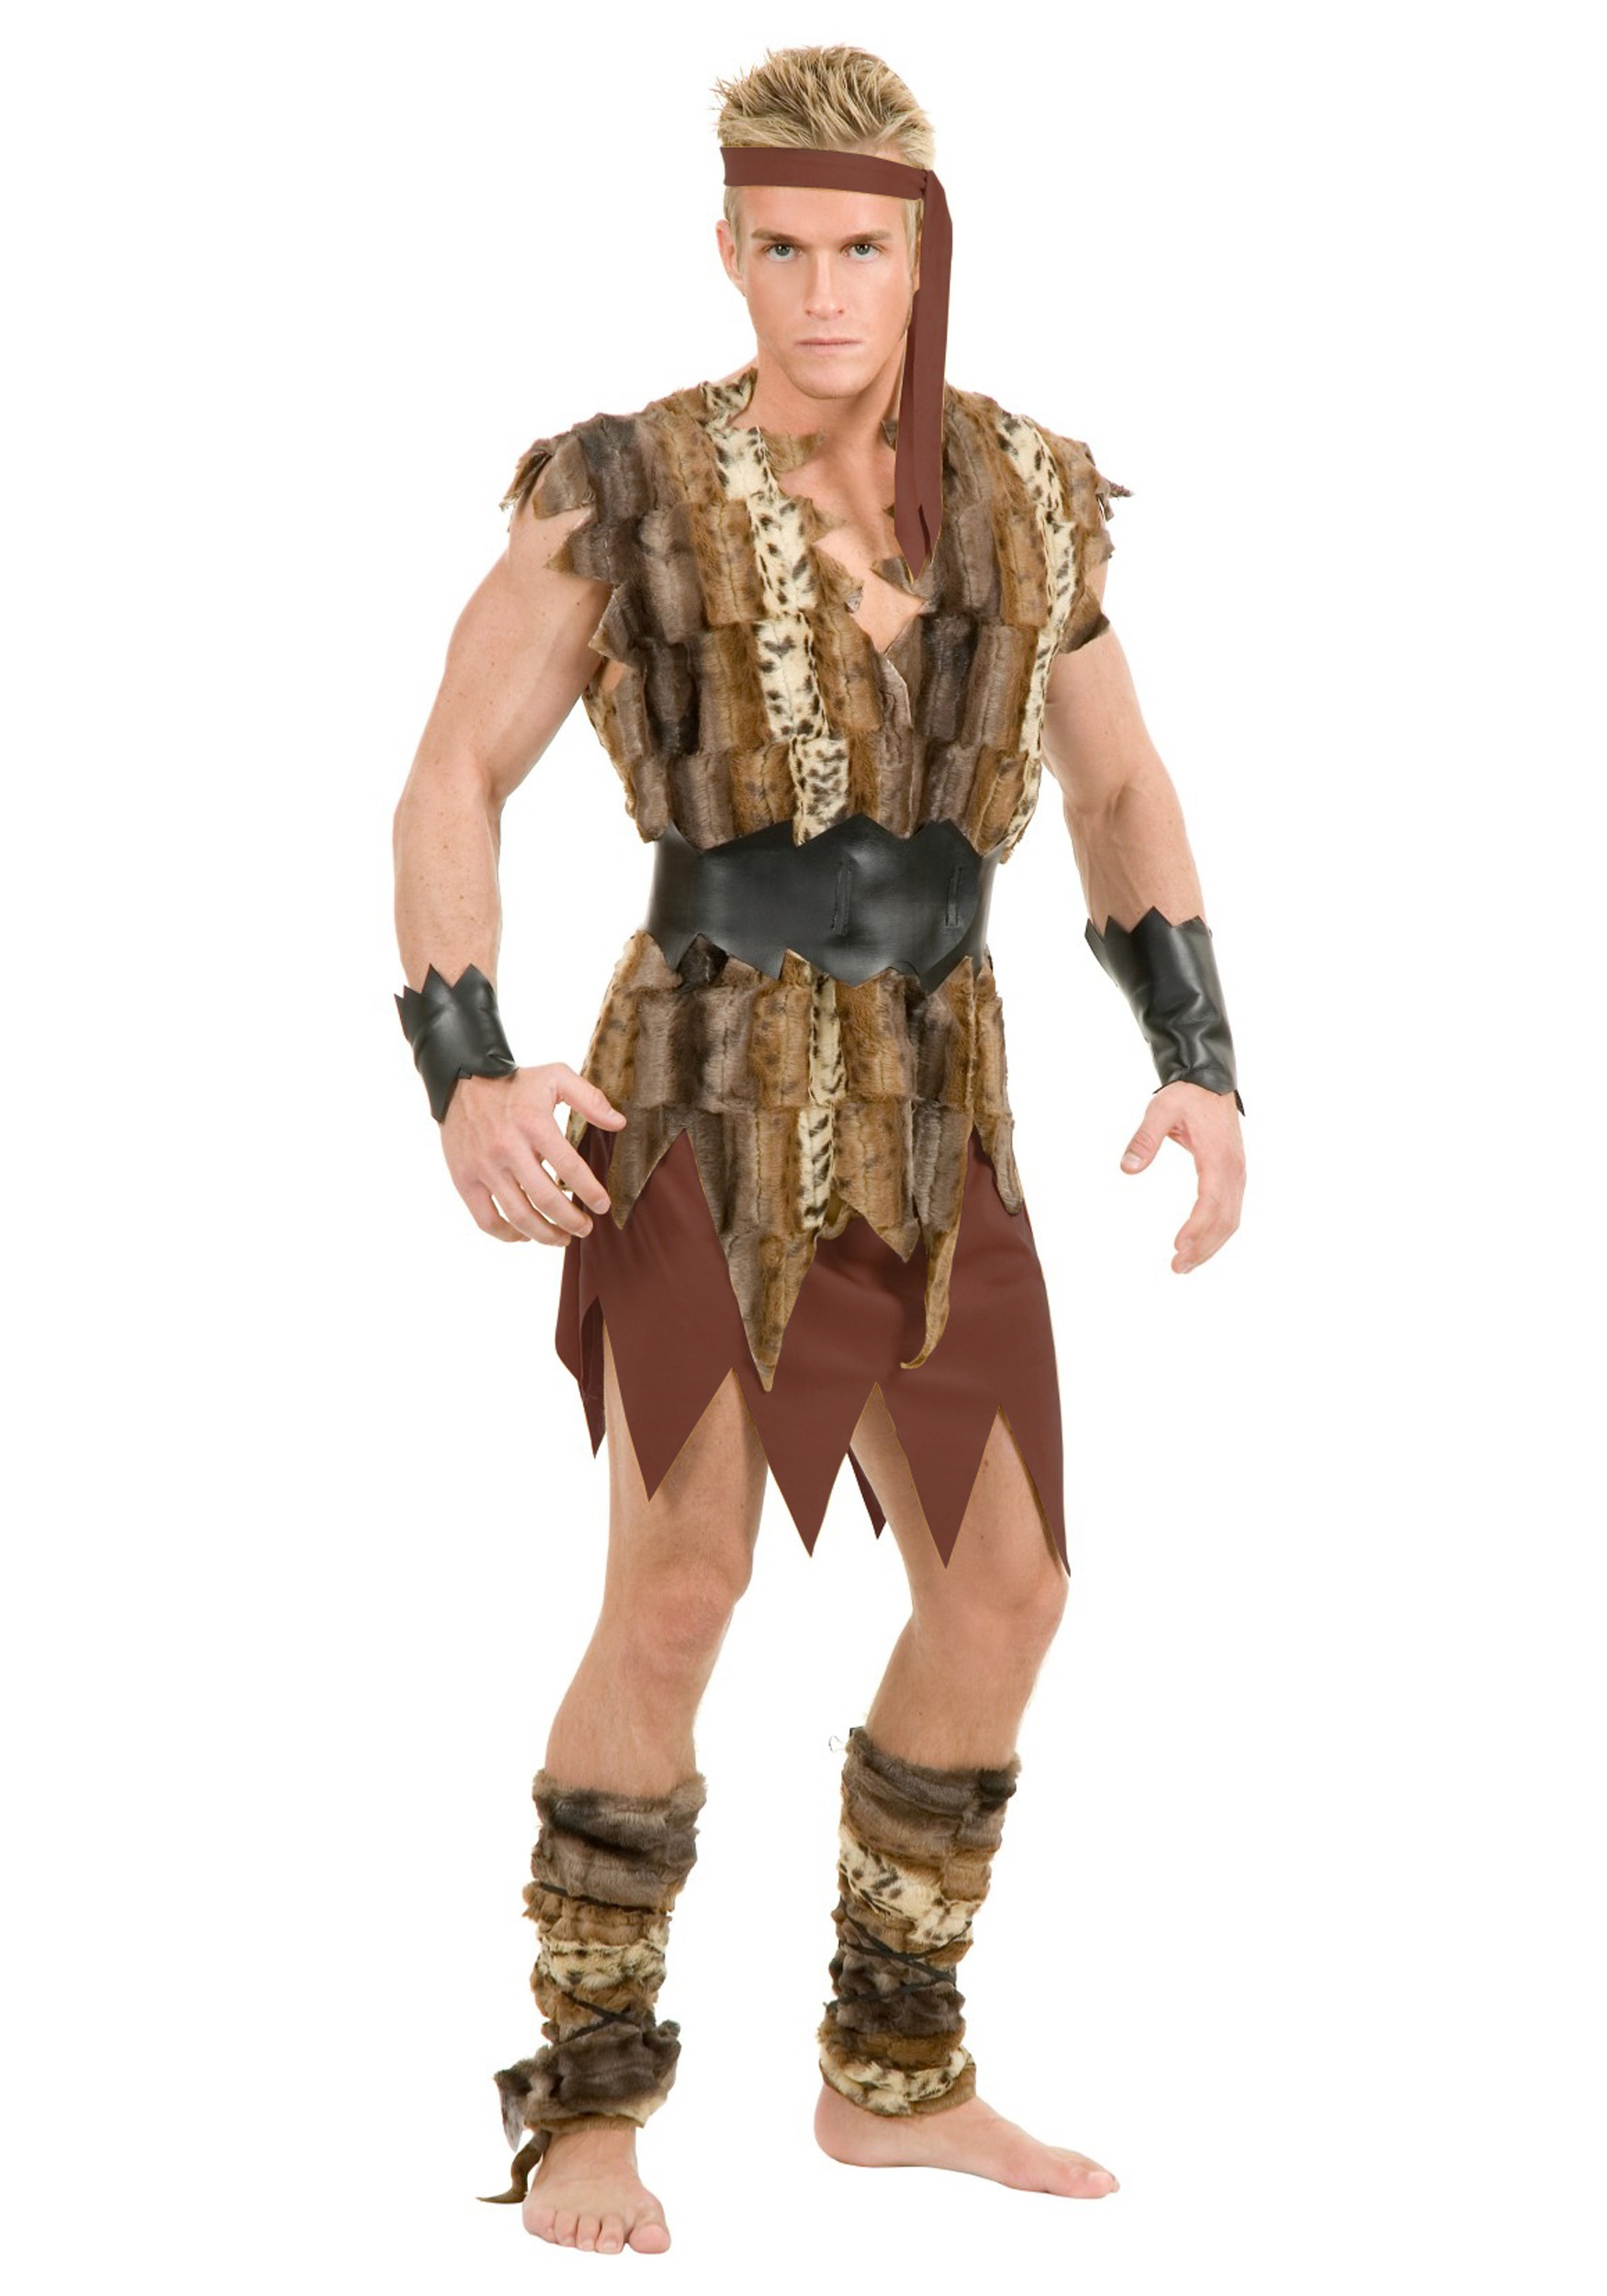 INOpets.com Anything for Pets Parents & Their Pets Cool Caveman Fancy Dress Costume